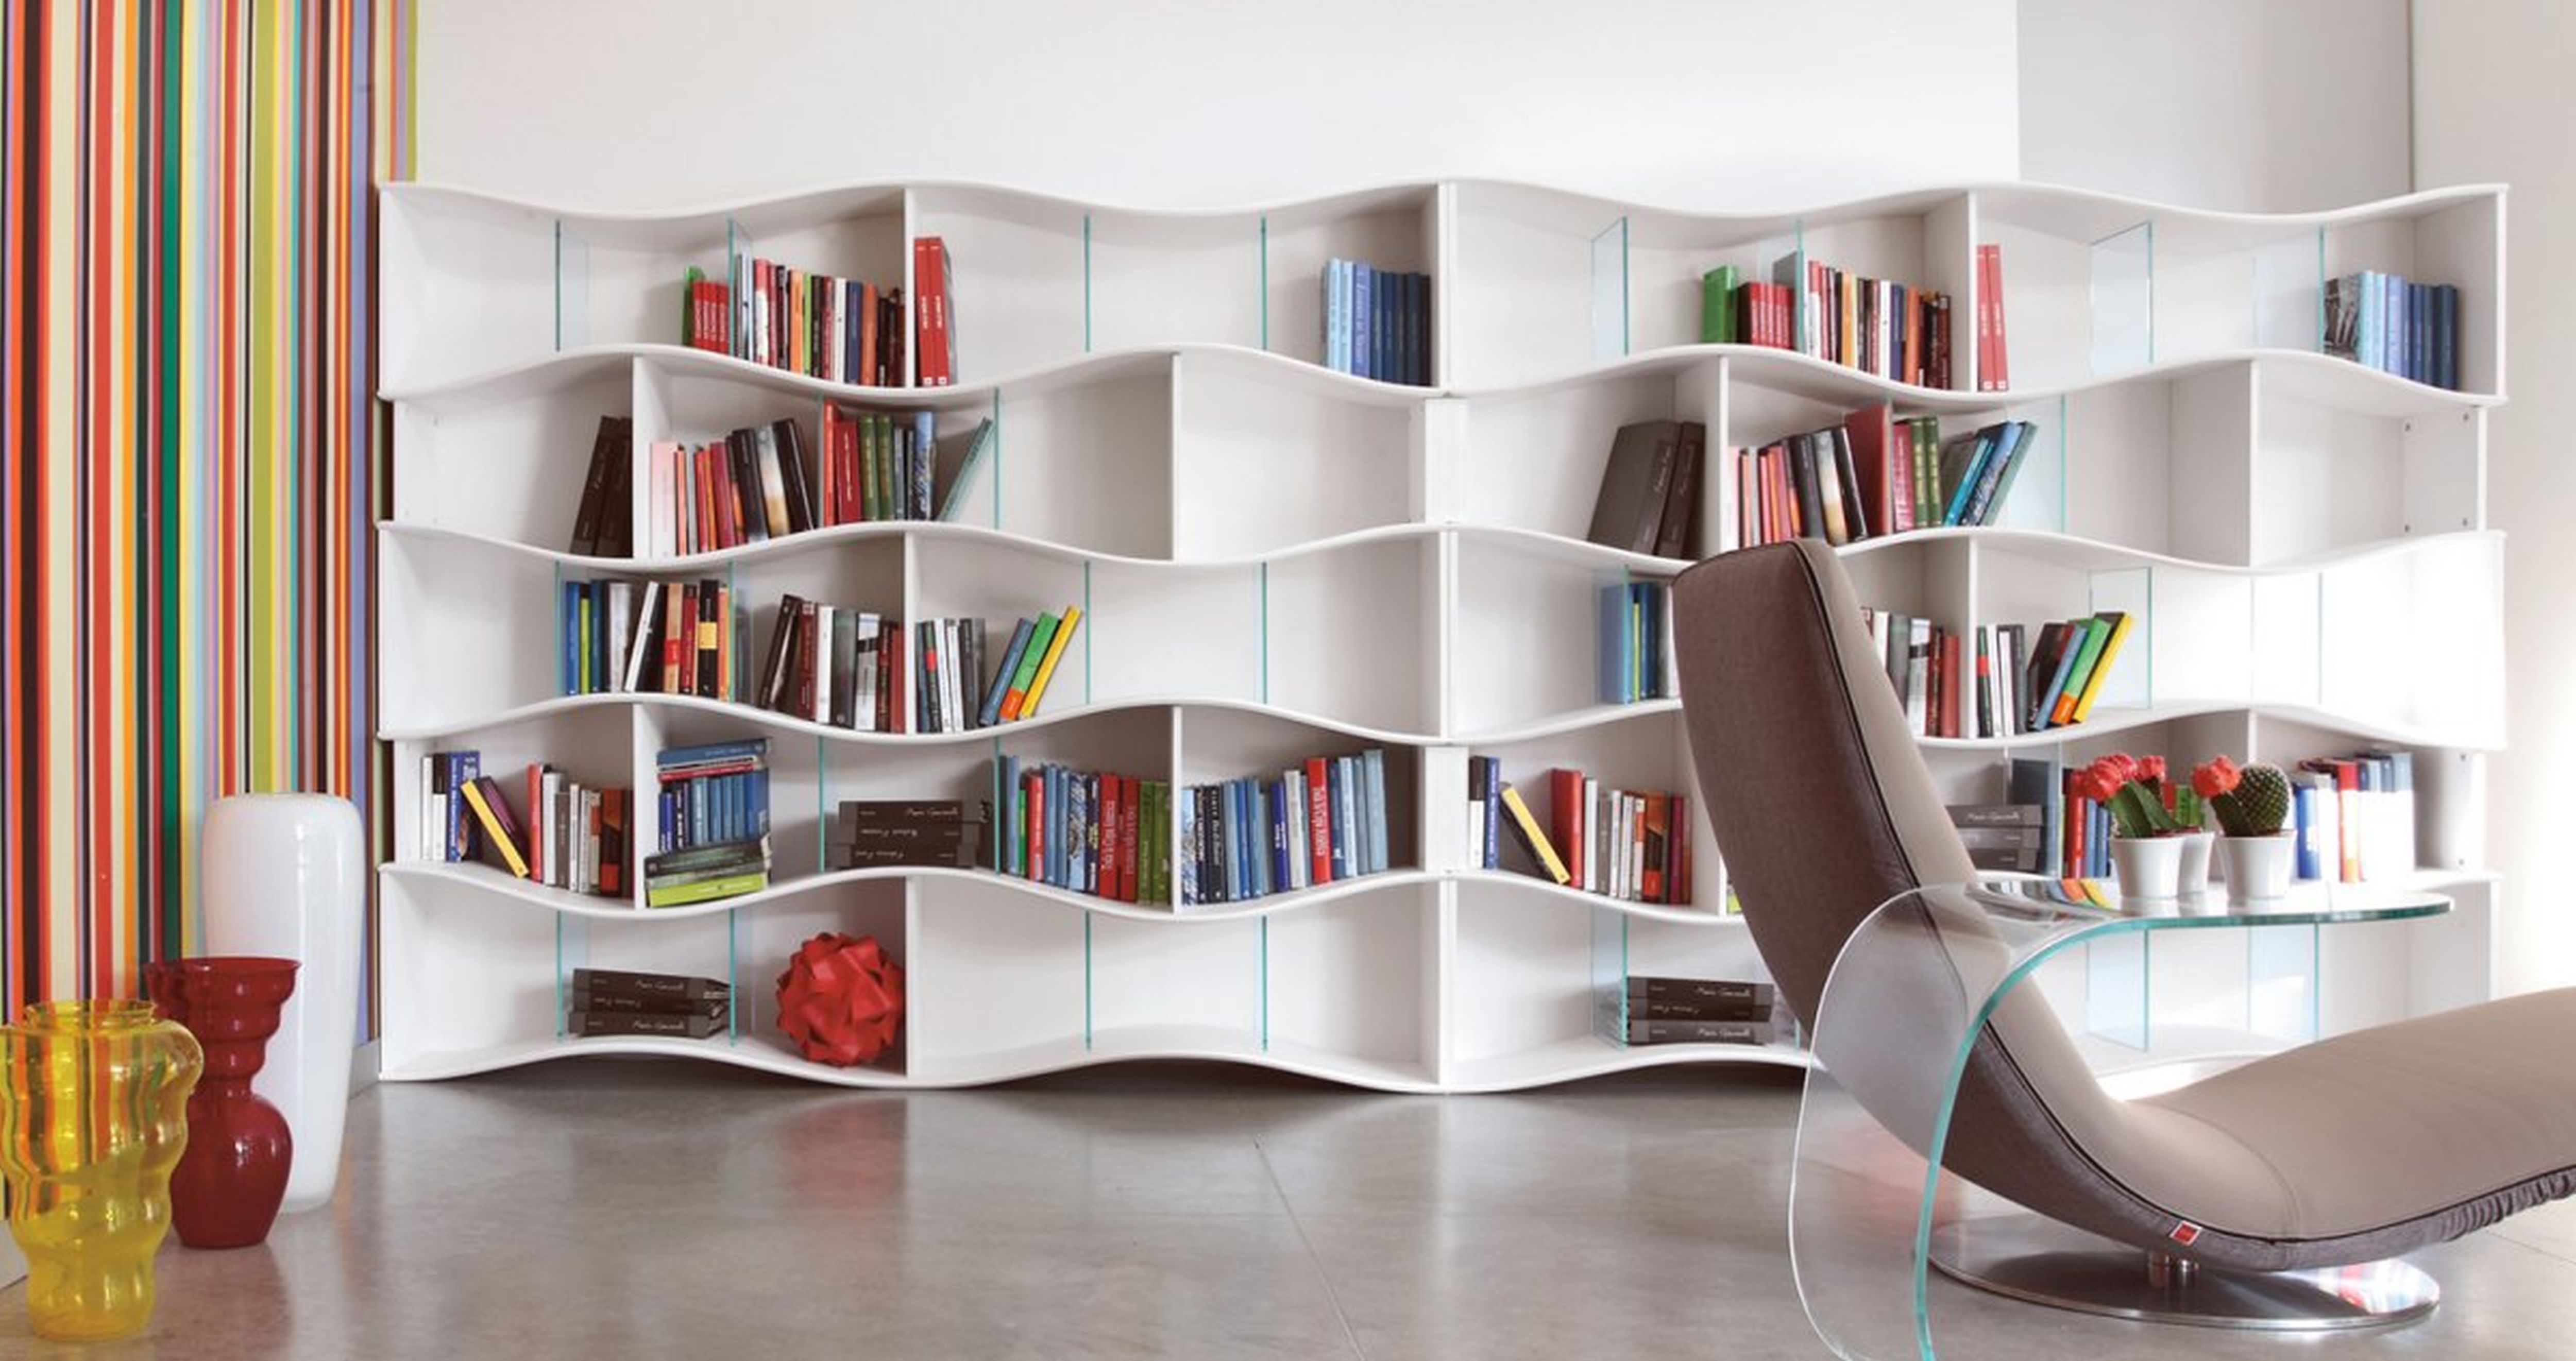 Decorating Ideas: Reading Corners at Home Reading Corners Decorating Ideas: Reading Corners at Home Decorating Ideas Reading Corners at Home 1